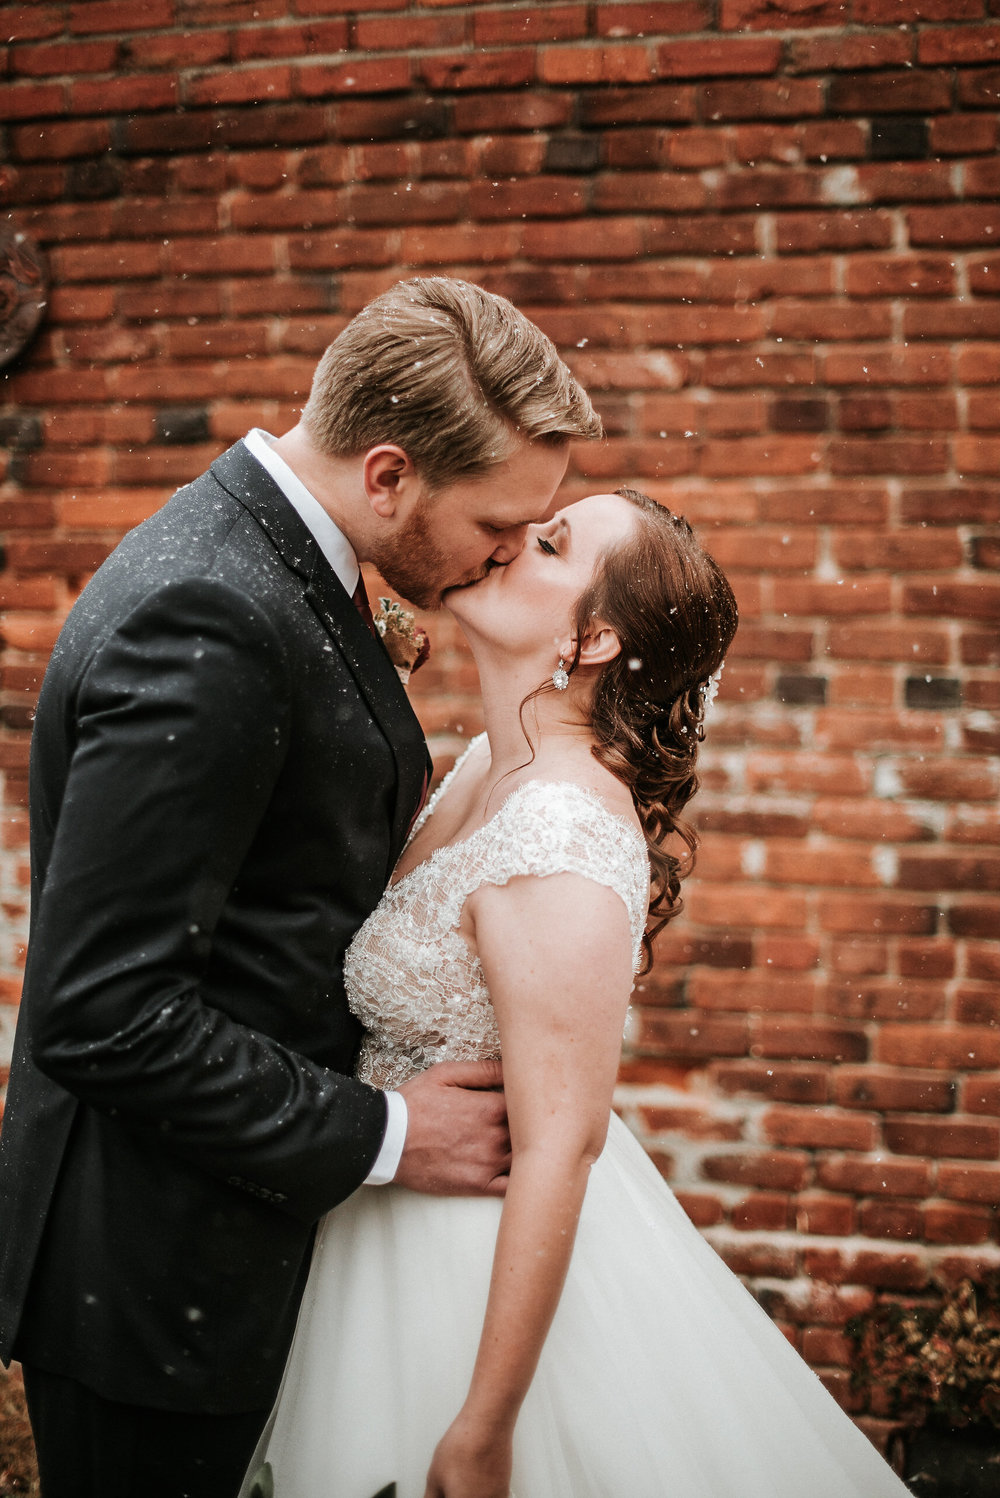 Couple kissing in front of brick wall